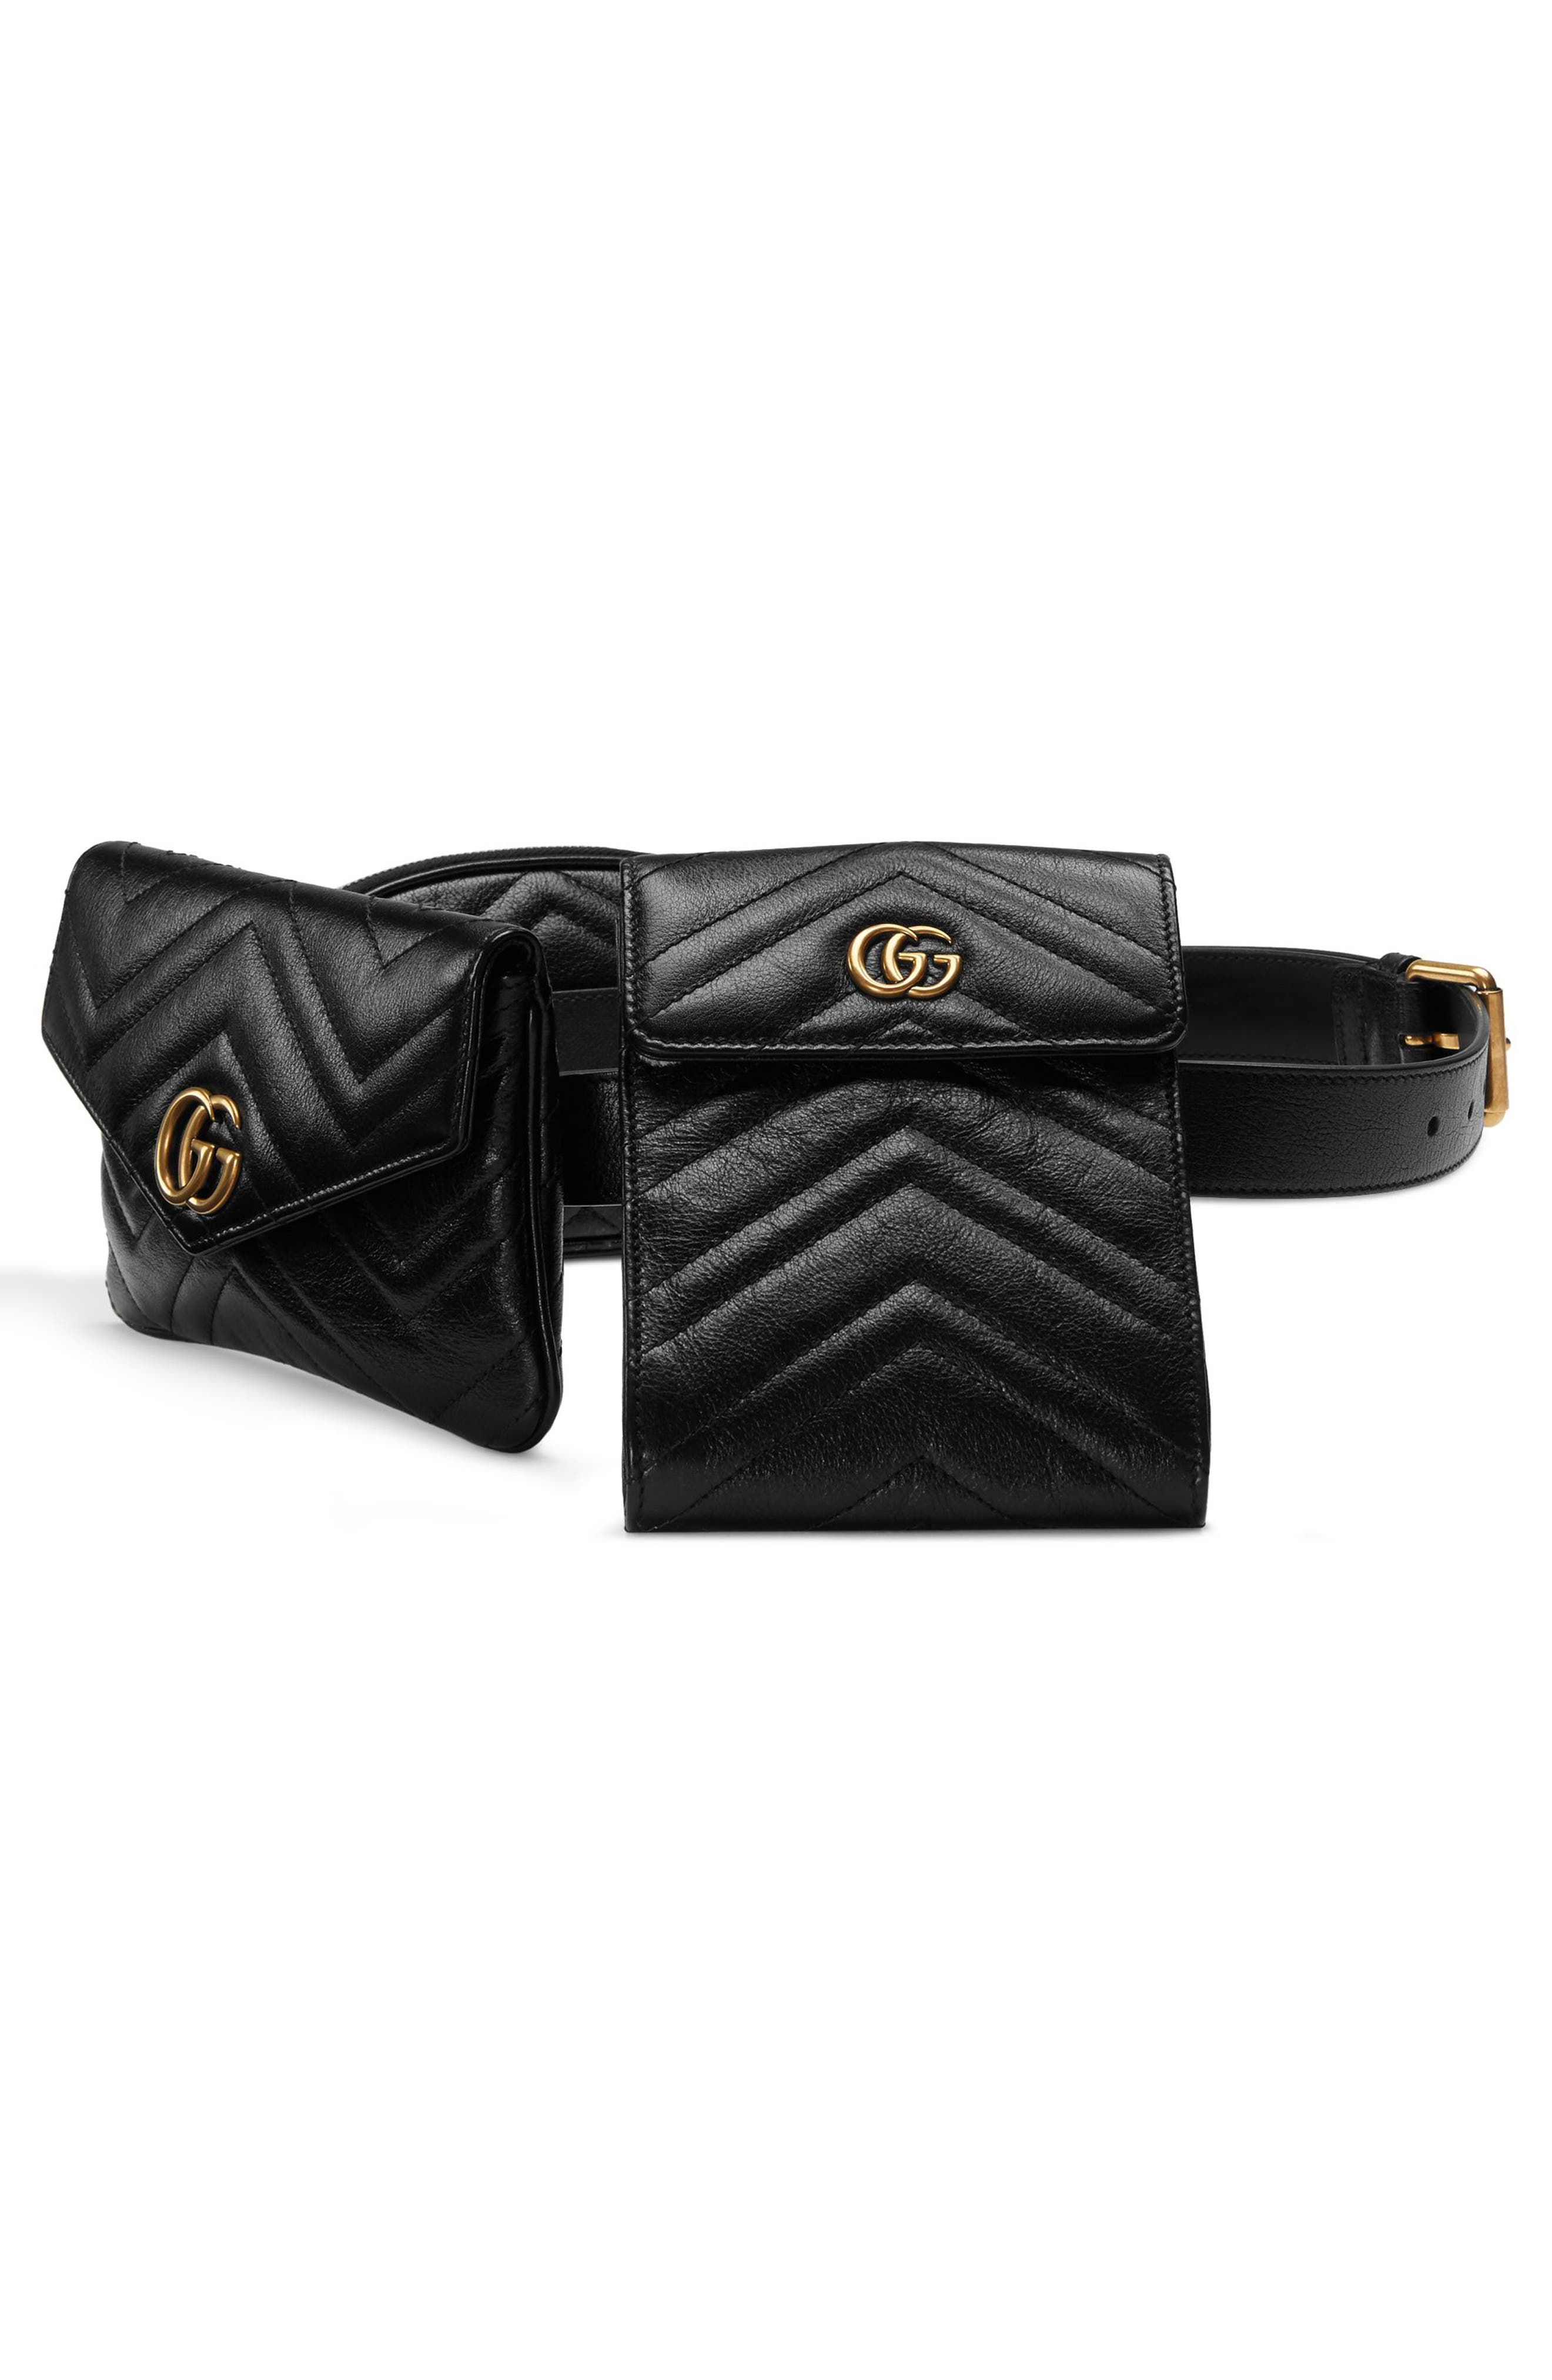 GG Marmont 2.0 Matelassé Triple Pouch Leather Belt Bag,                             Alternate thumbnail 4, color,                             001